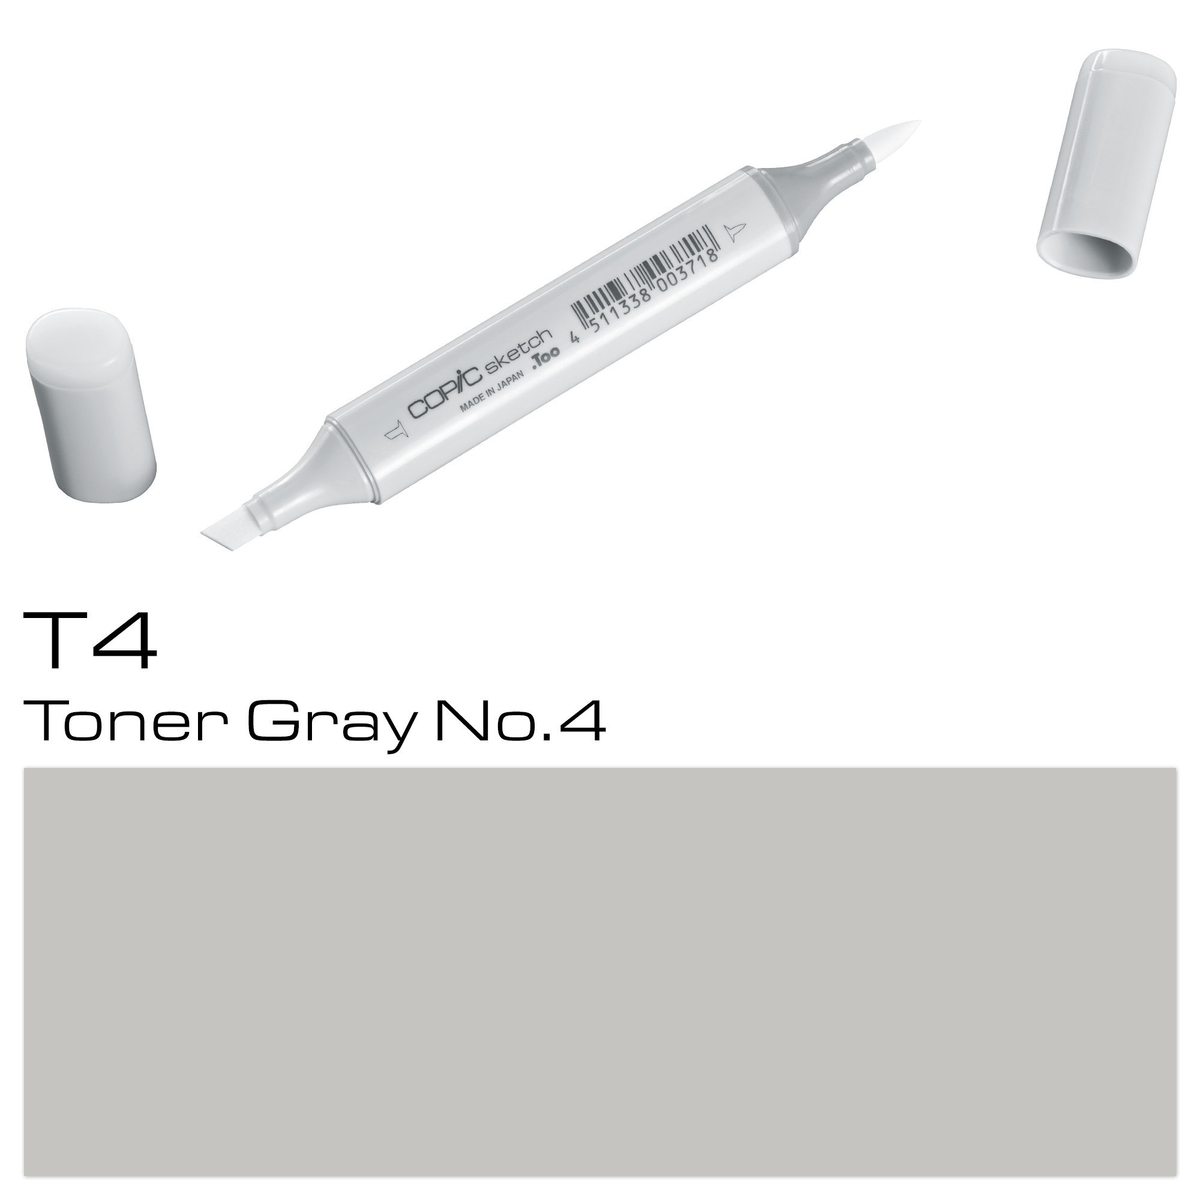 Copic Sketch T 4 toner gray